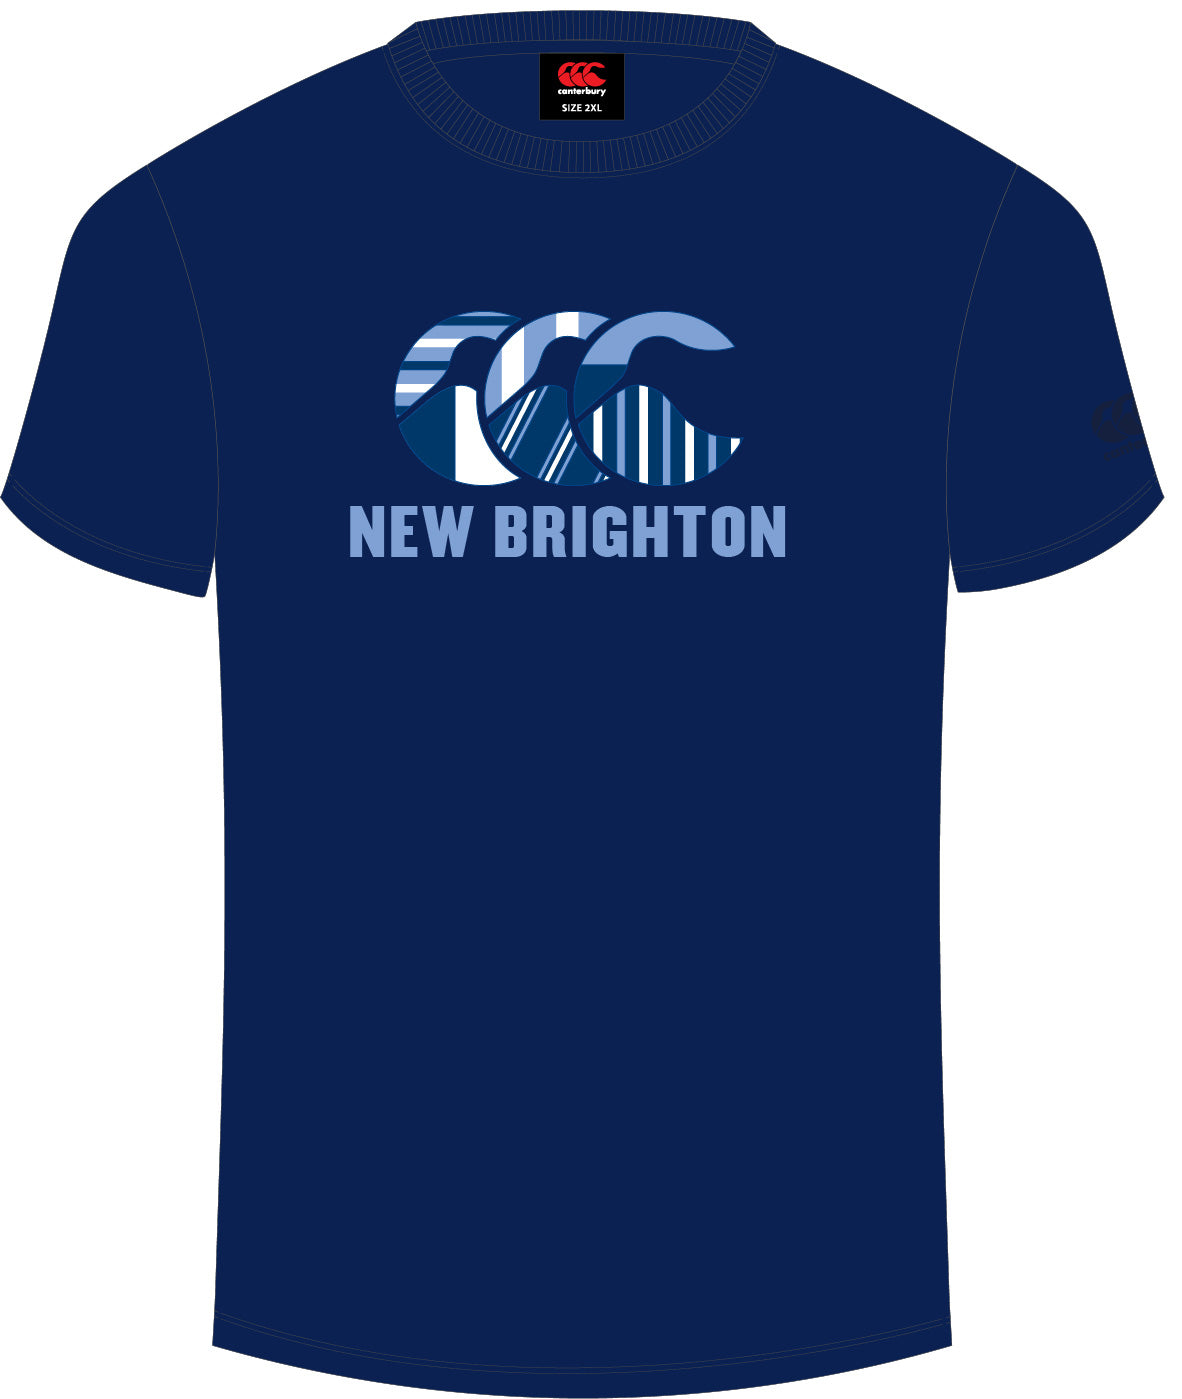 New Brighton FC CCC Ugly Tshirt Snr